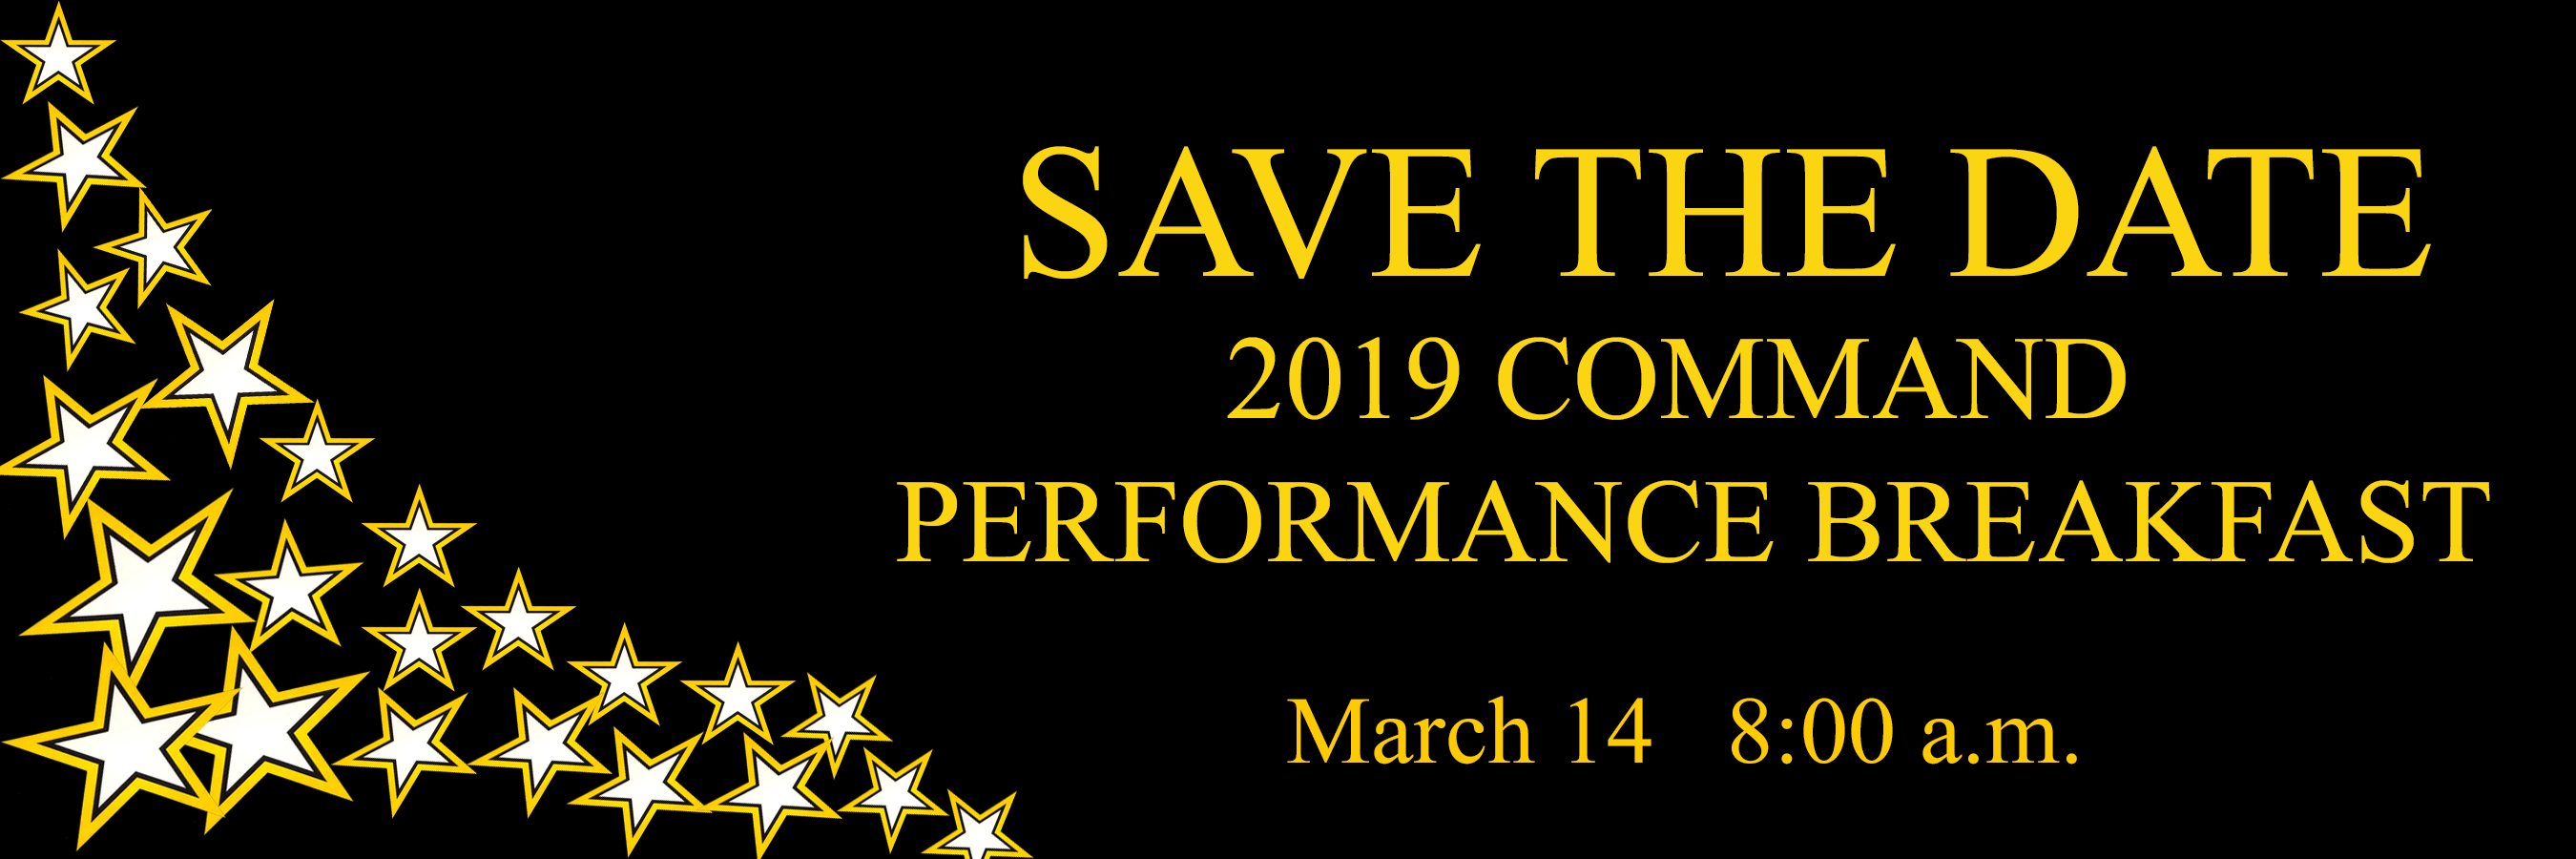 2019-Save-The-Date.png